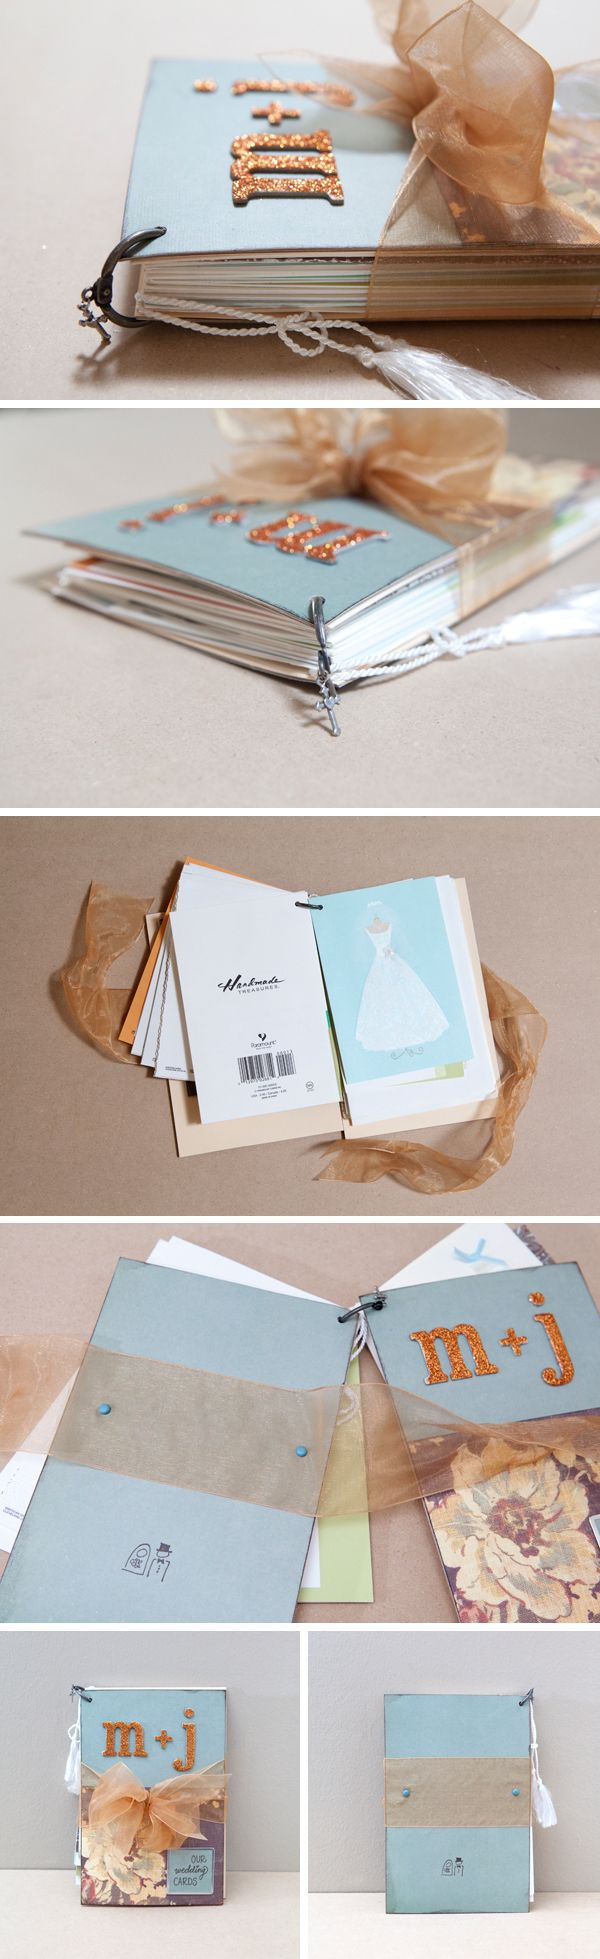 Book with all the cards from your wedding.